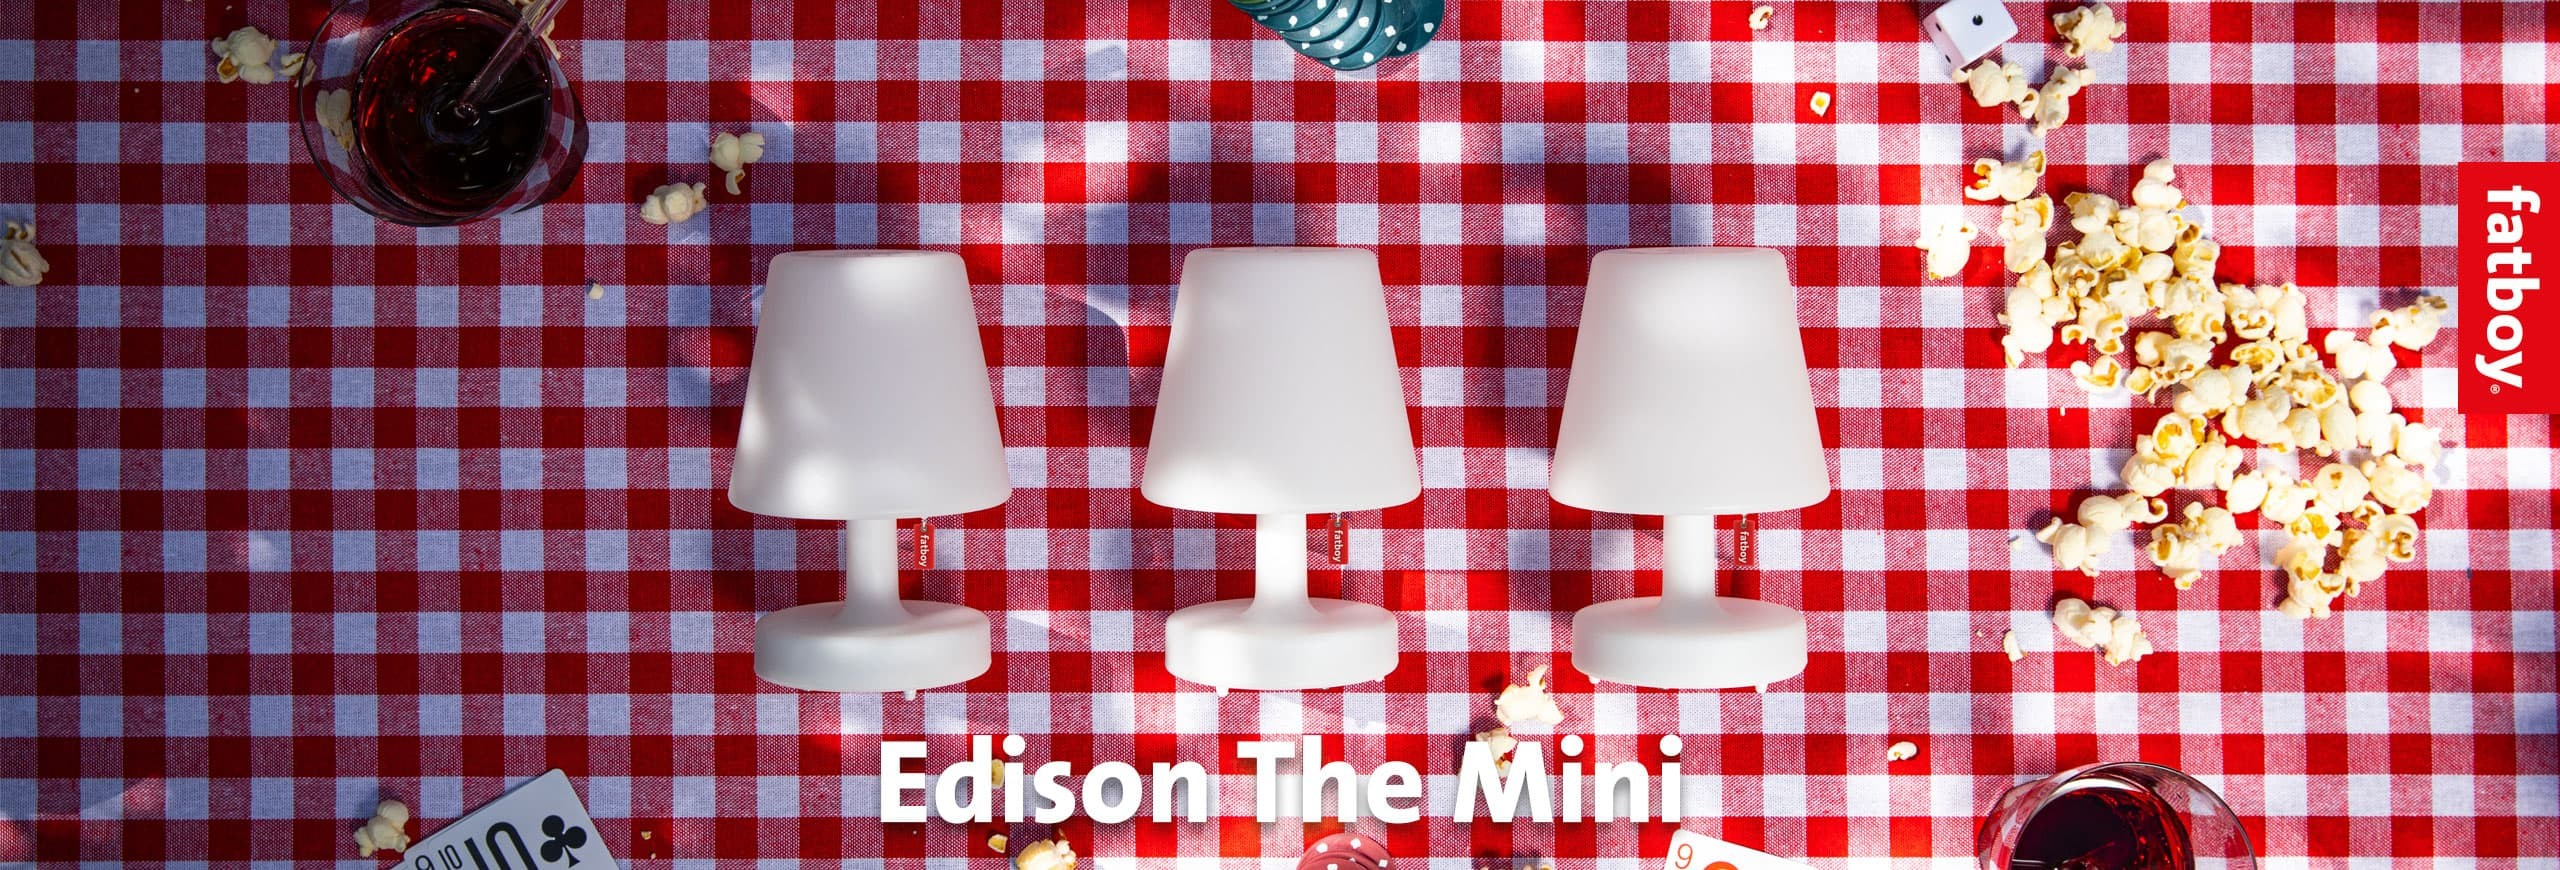 Fatboy Edison The Mini